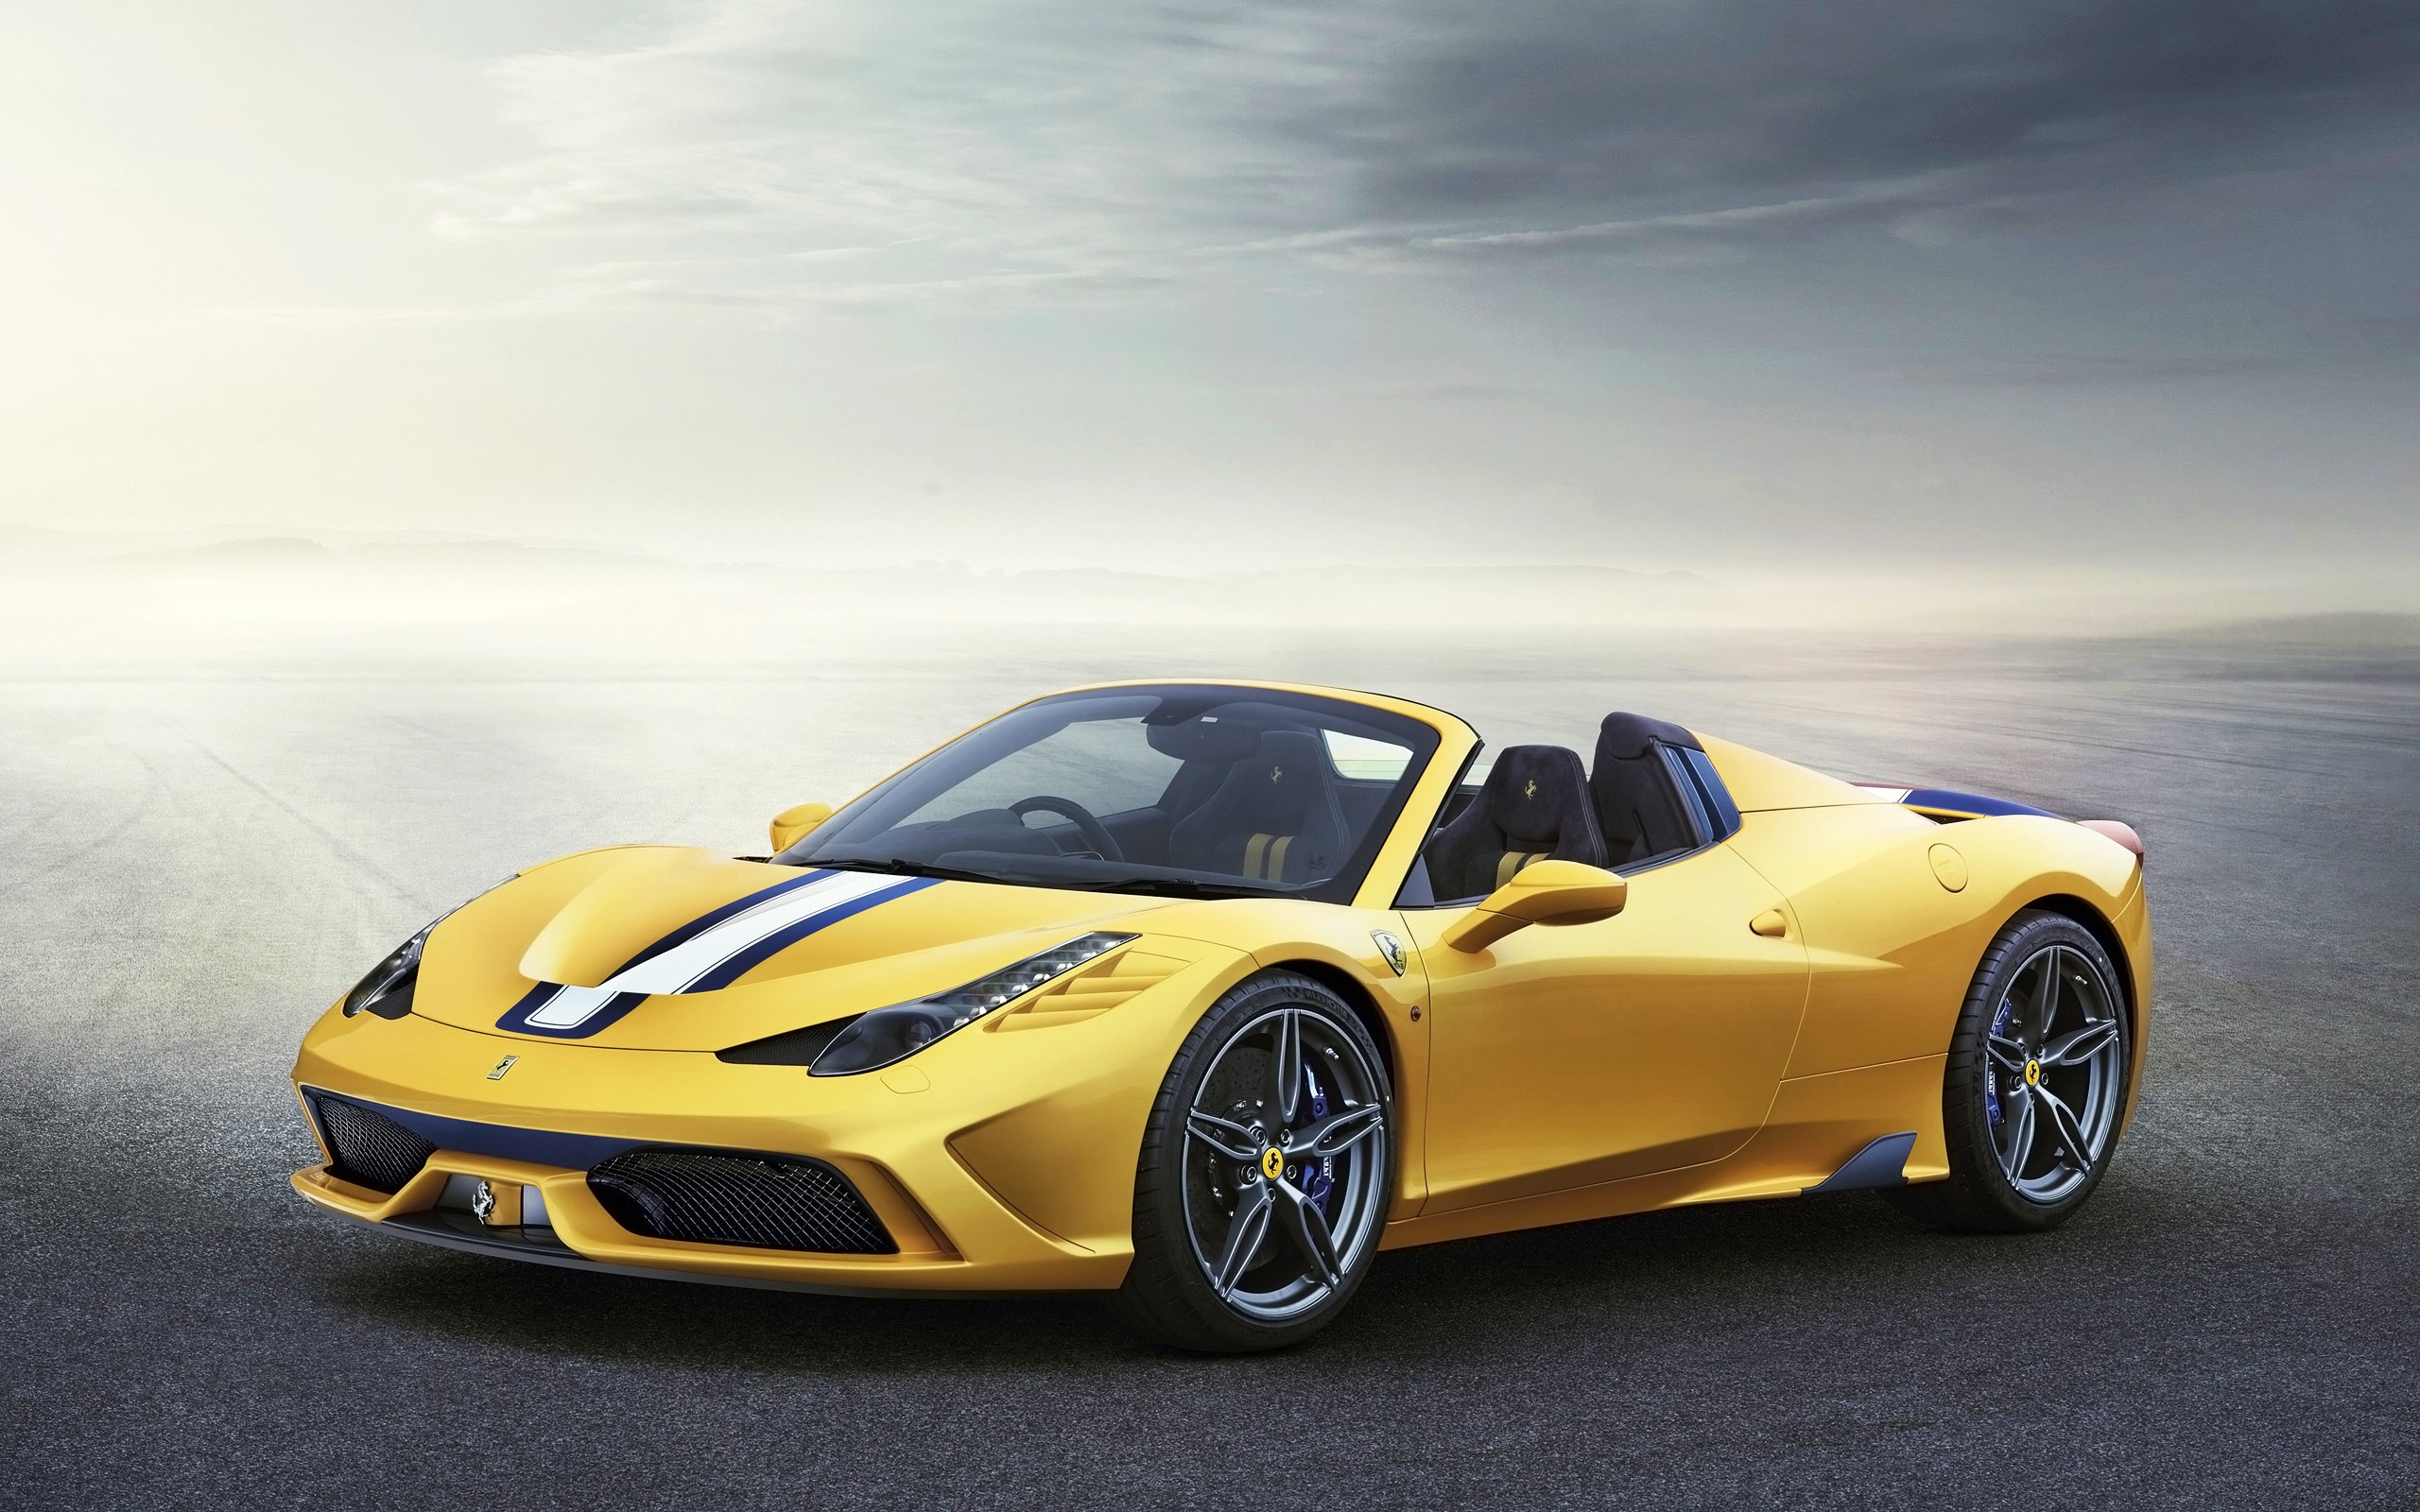 Ferrari 458 Speciale A Hd Cars 4k Wallpapers Images Backgrounds Photos And Pictures